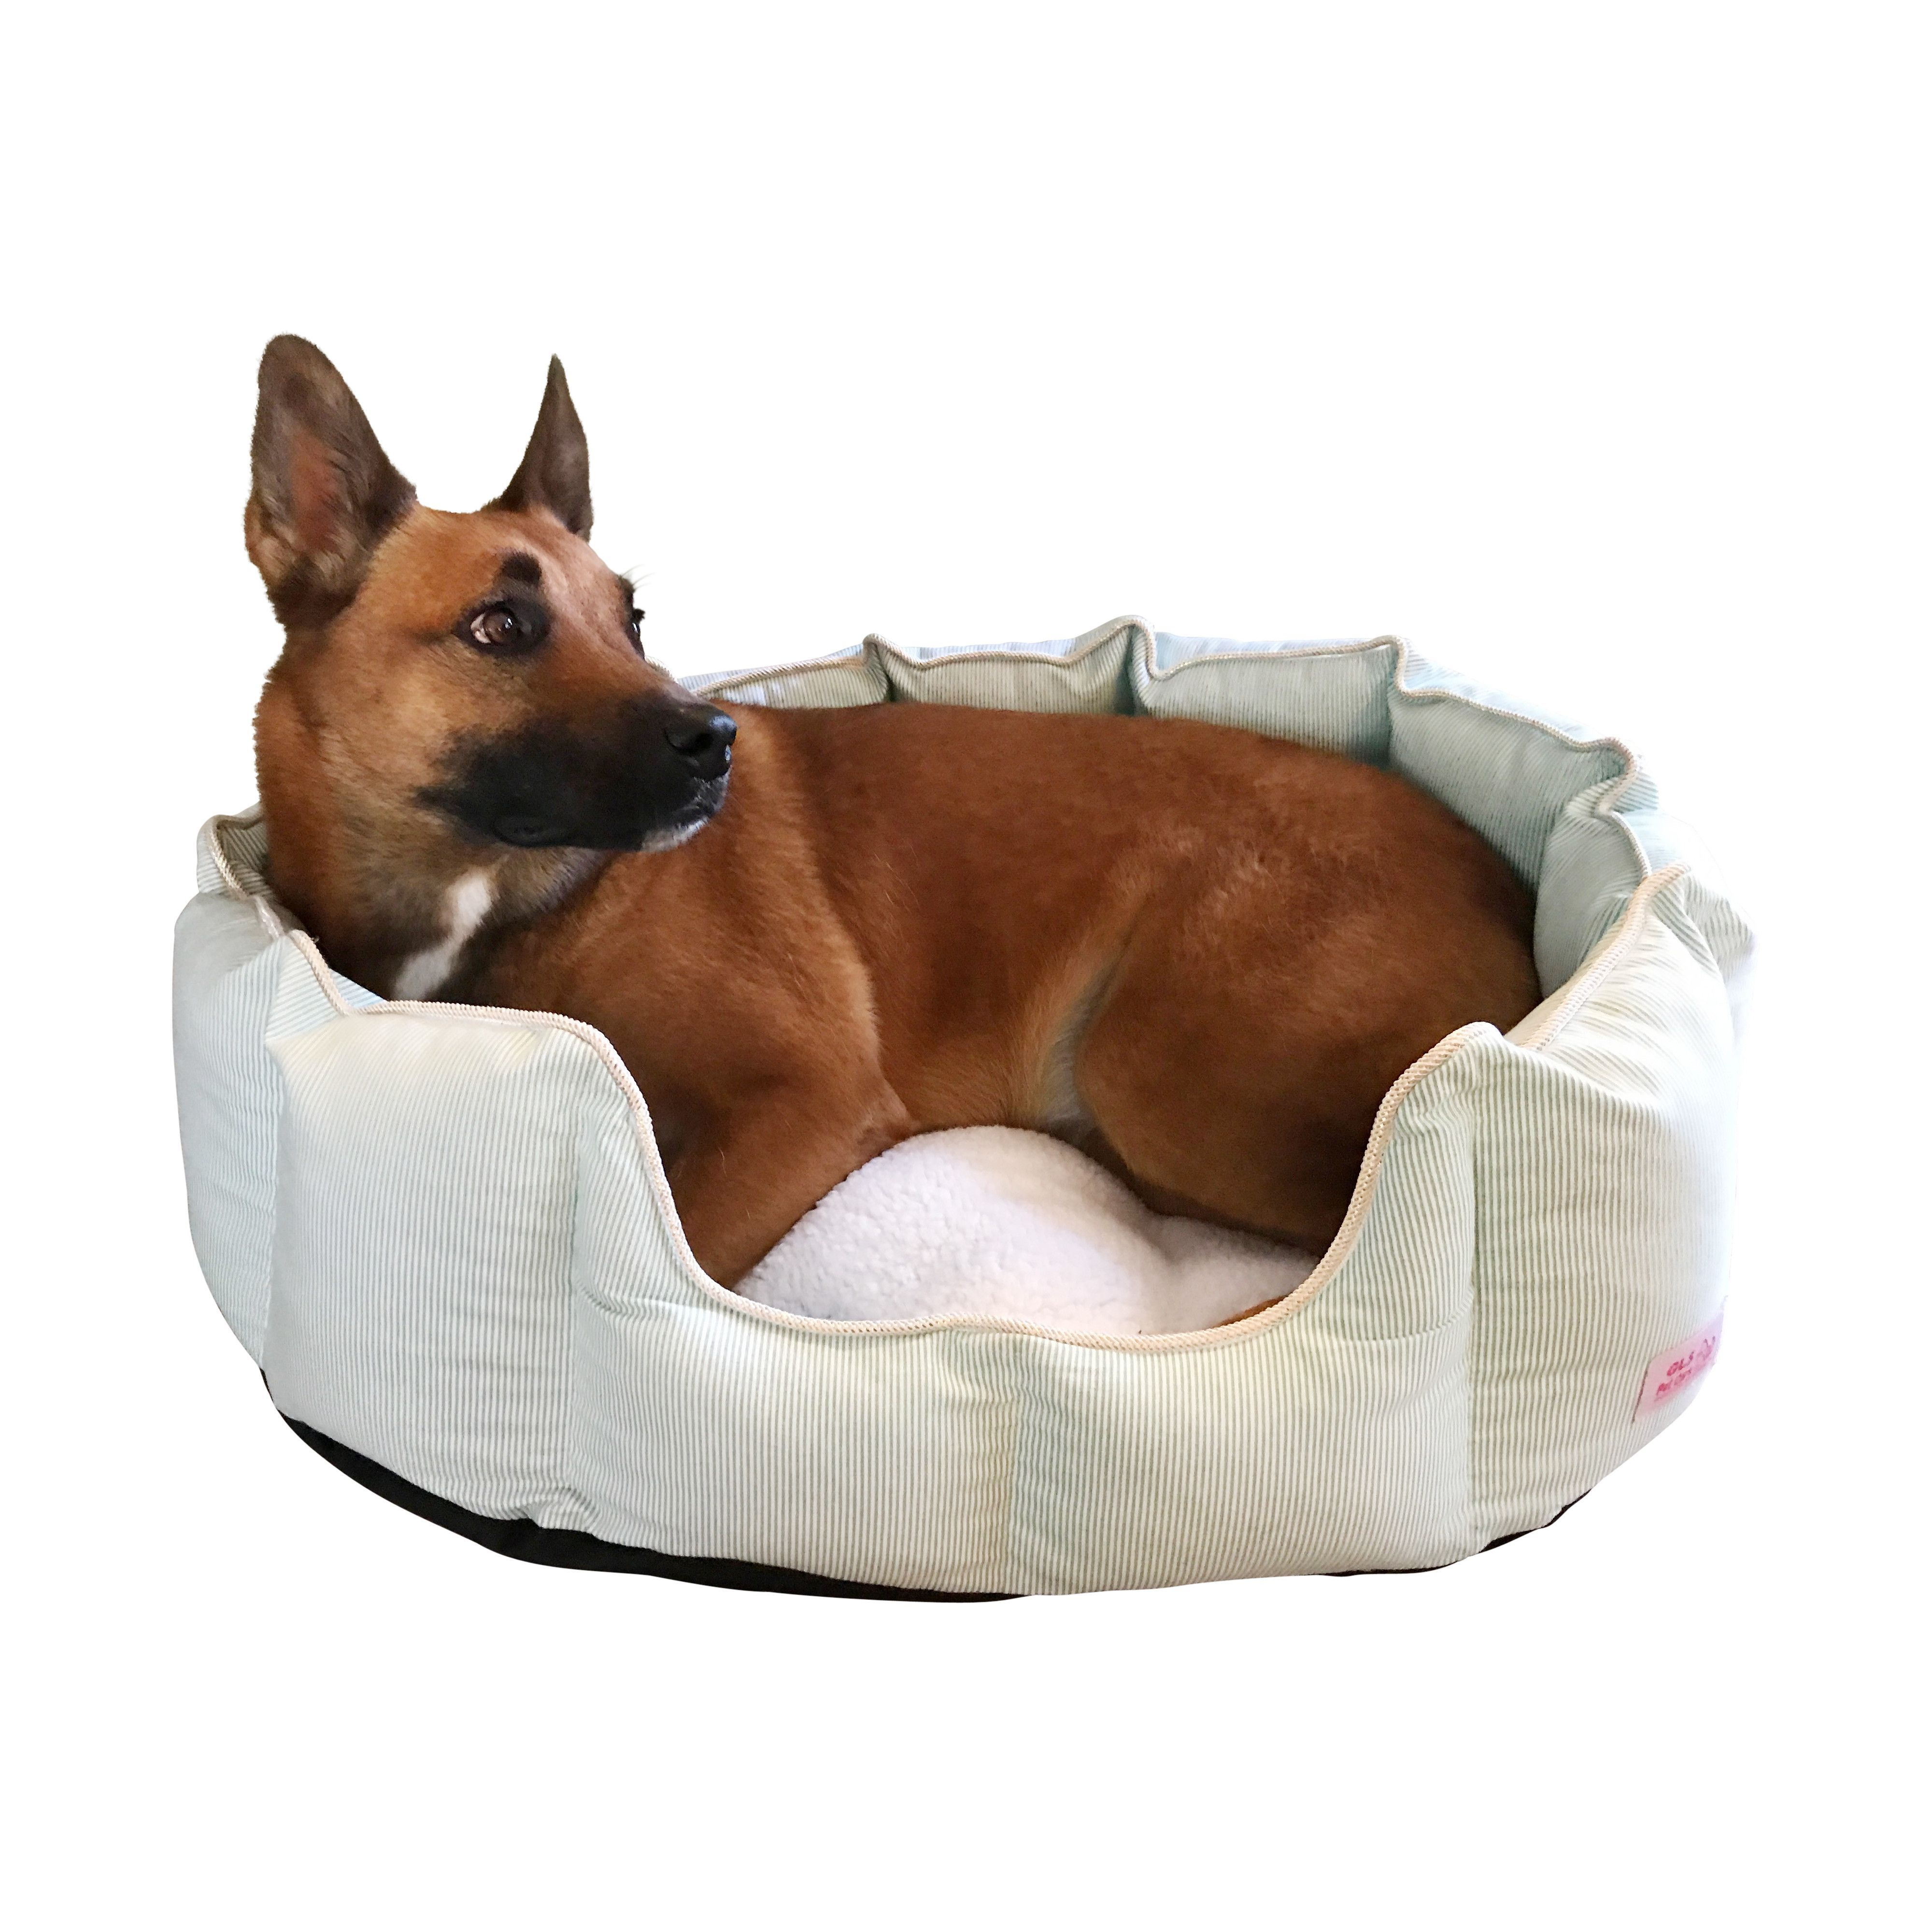 designer snuggle tan camel small base fabric how kona light in dog keep cover a your brown products bed the flannel winter warm to with cave removable